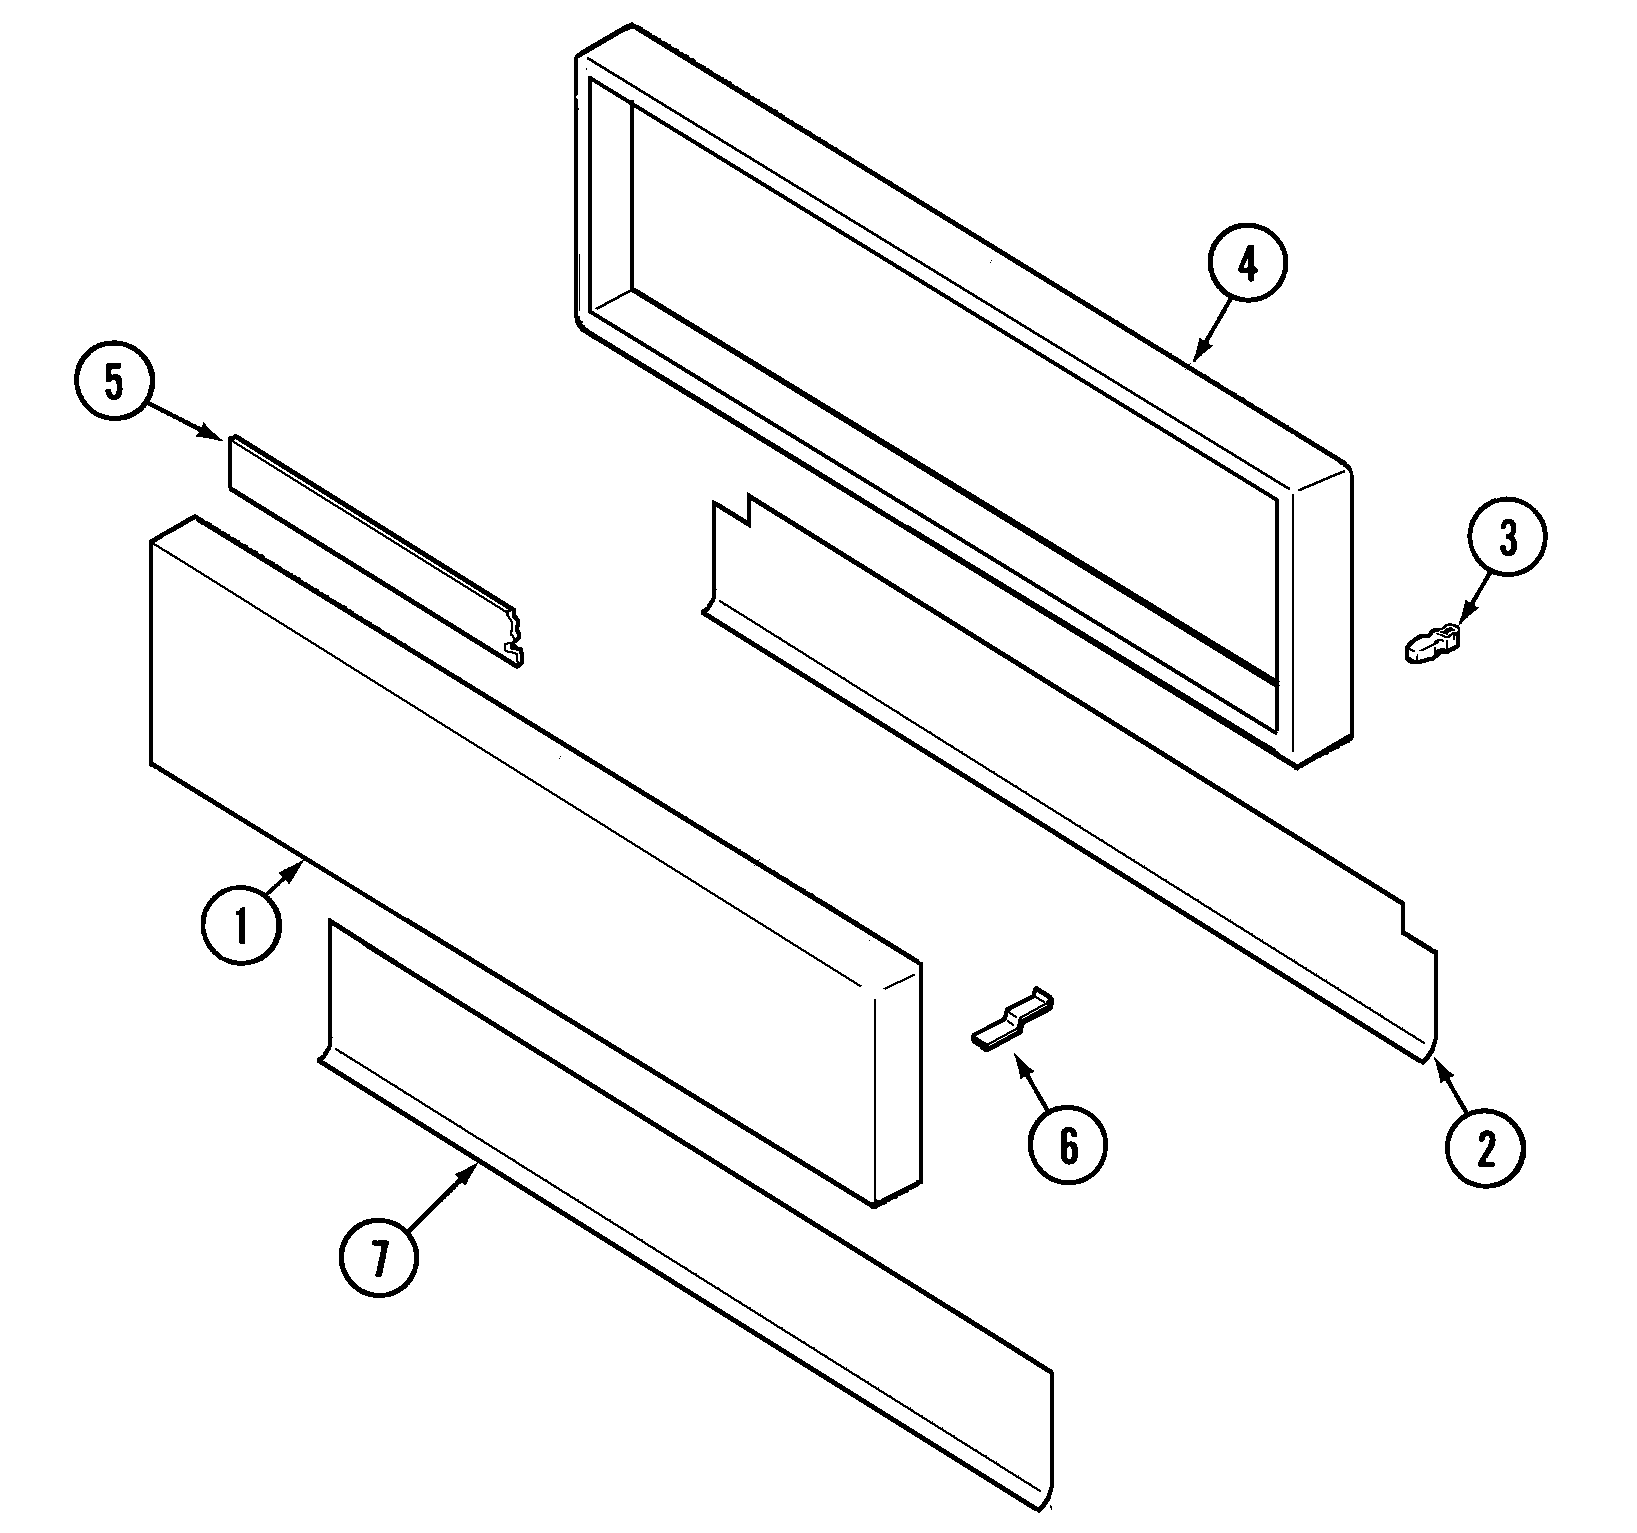 hight resolution of svd48600p gas electric slide in range access panel parts diagram